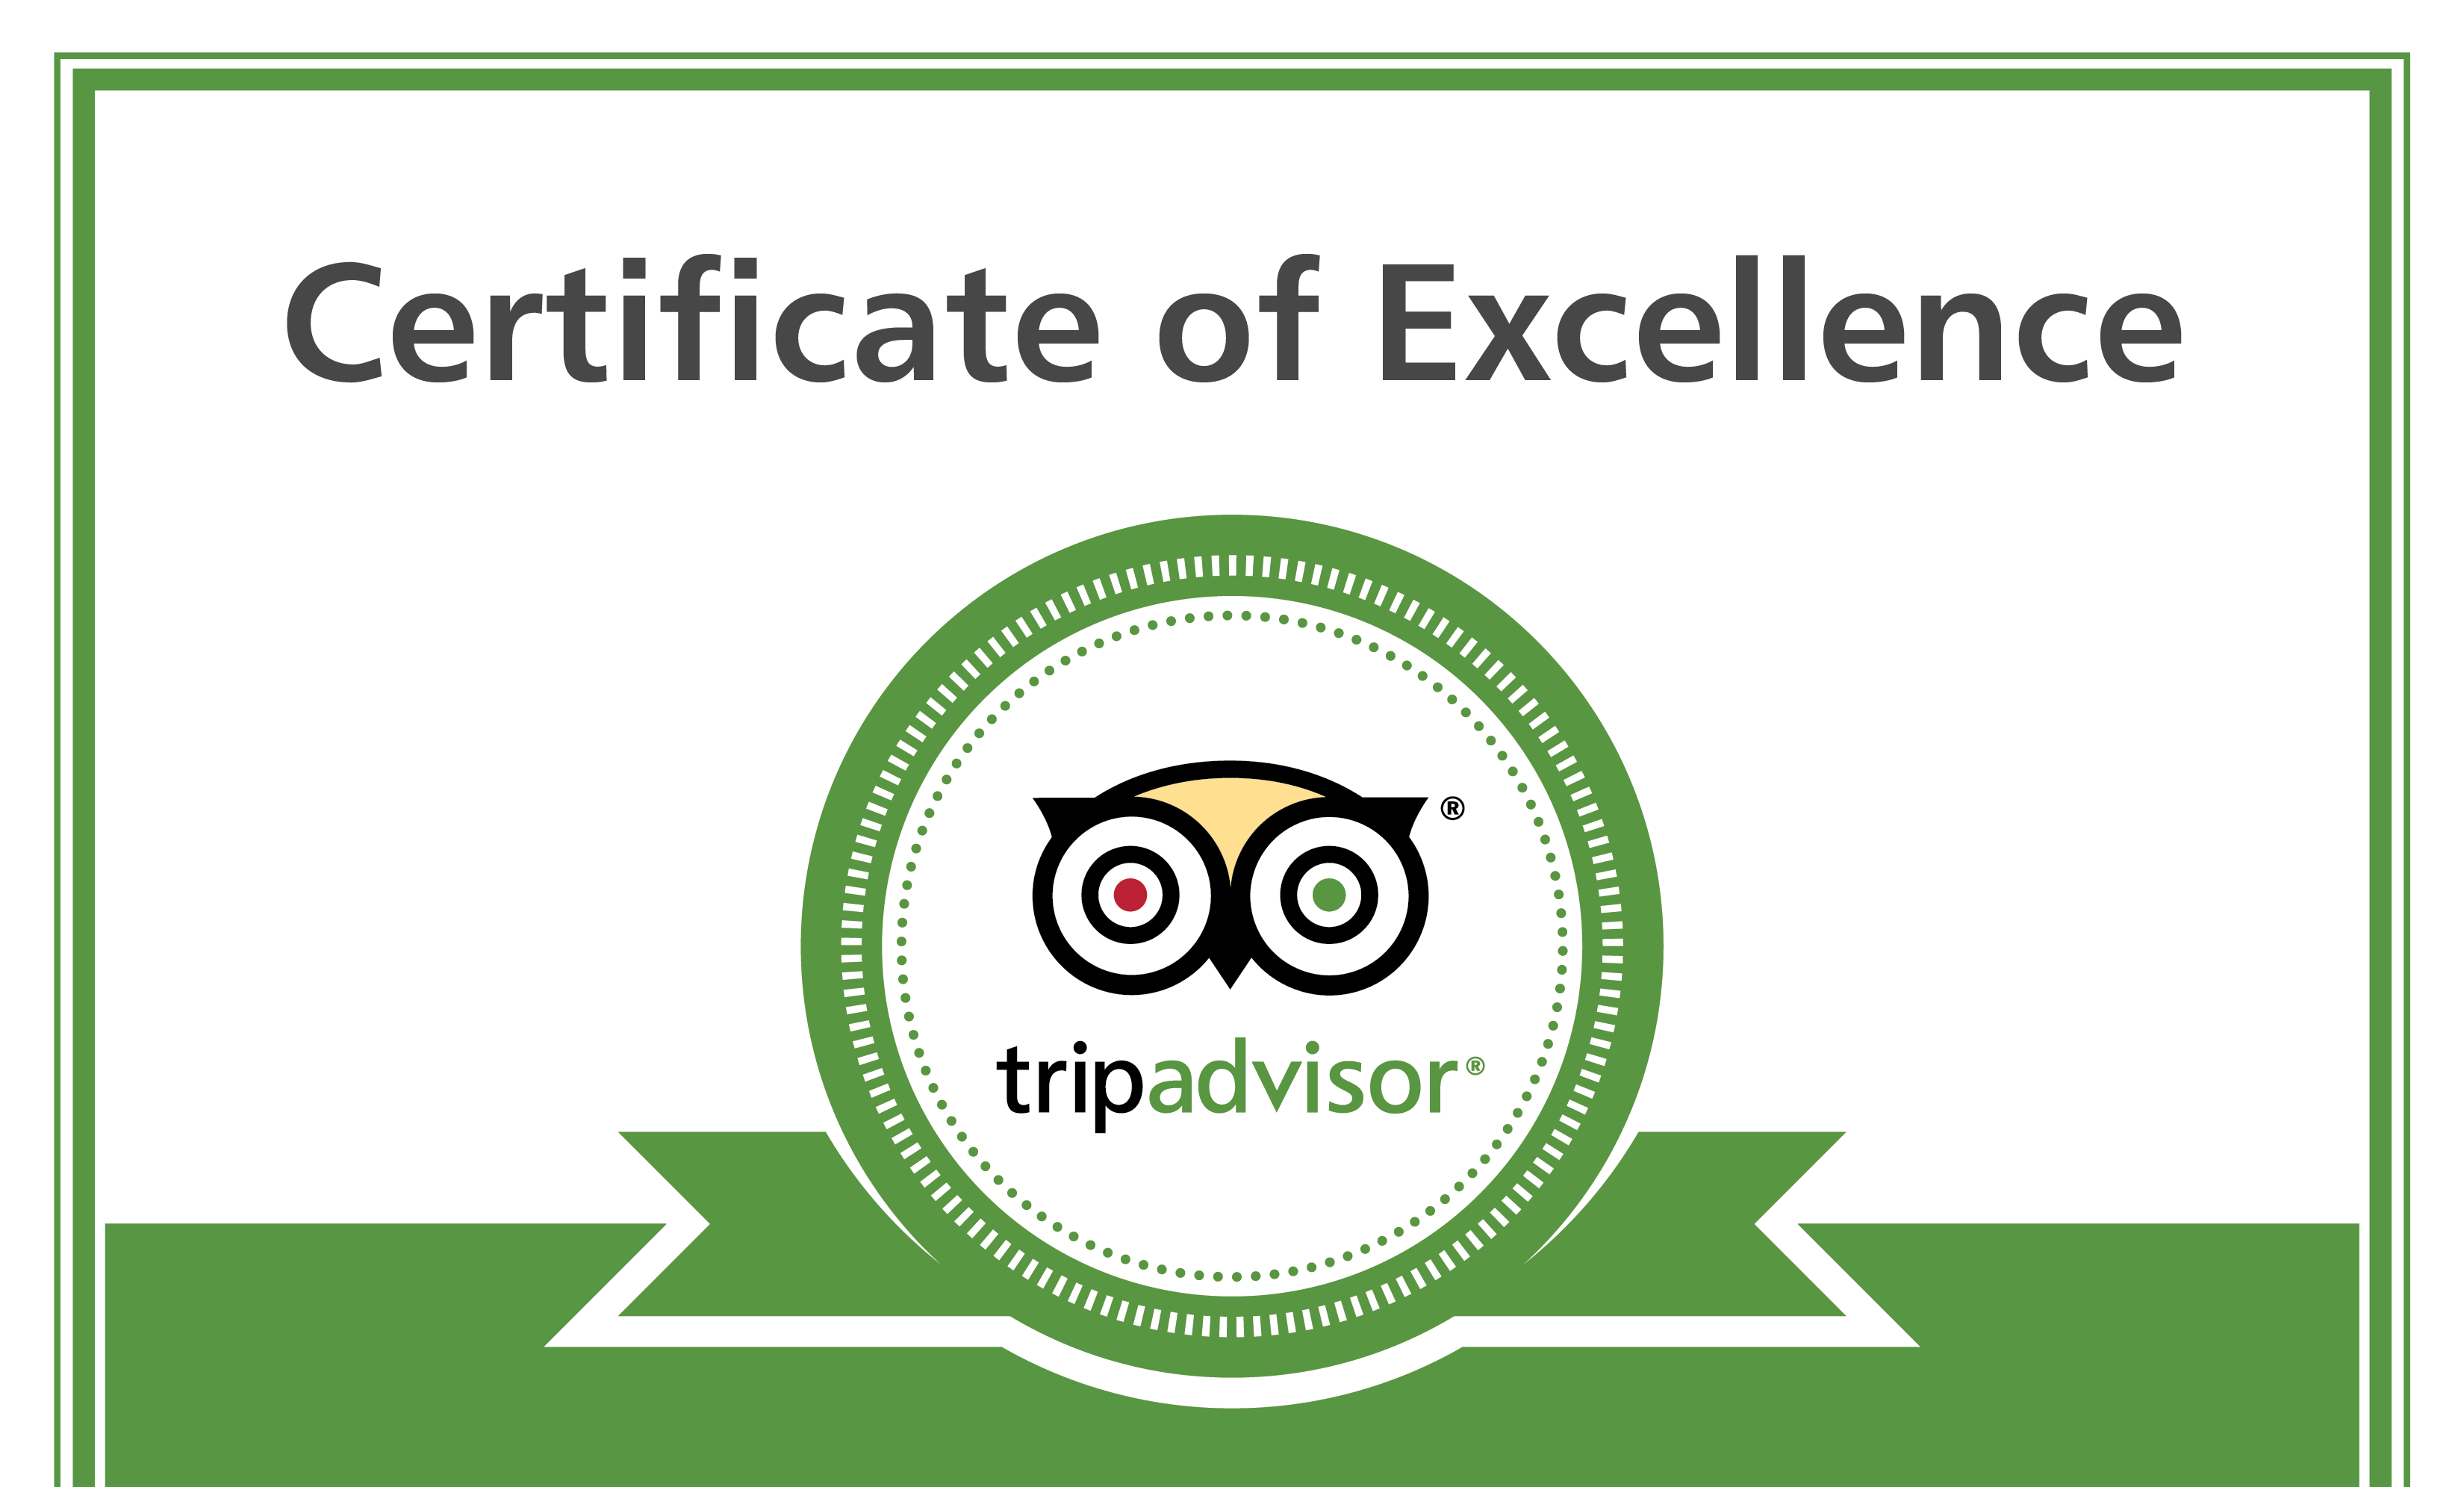 I'm proud of my consistent 5-star rating in TripAdvisor: Click to see the independently reviewed comments.